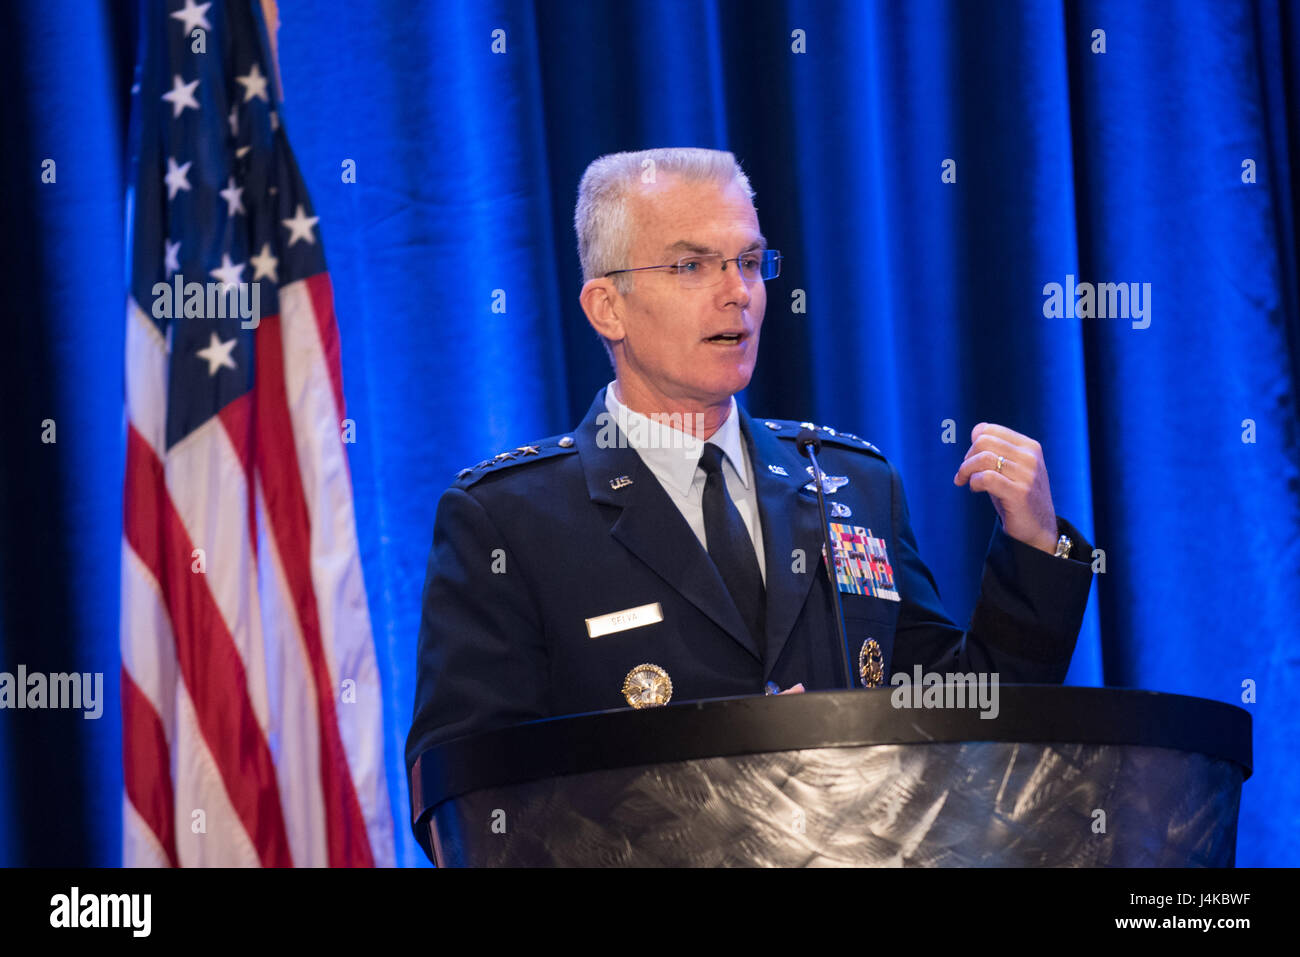 U.S. Air Force Gen. Paul J. Selva, Vice Chairman of the Joint Chiefs of Staff, delivers a keynote speech during - Stock Image